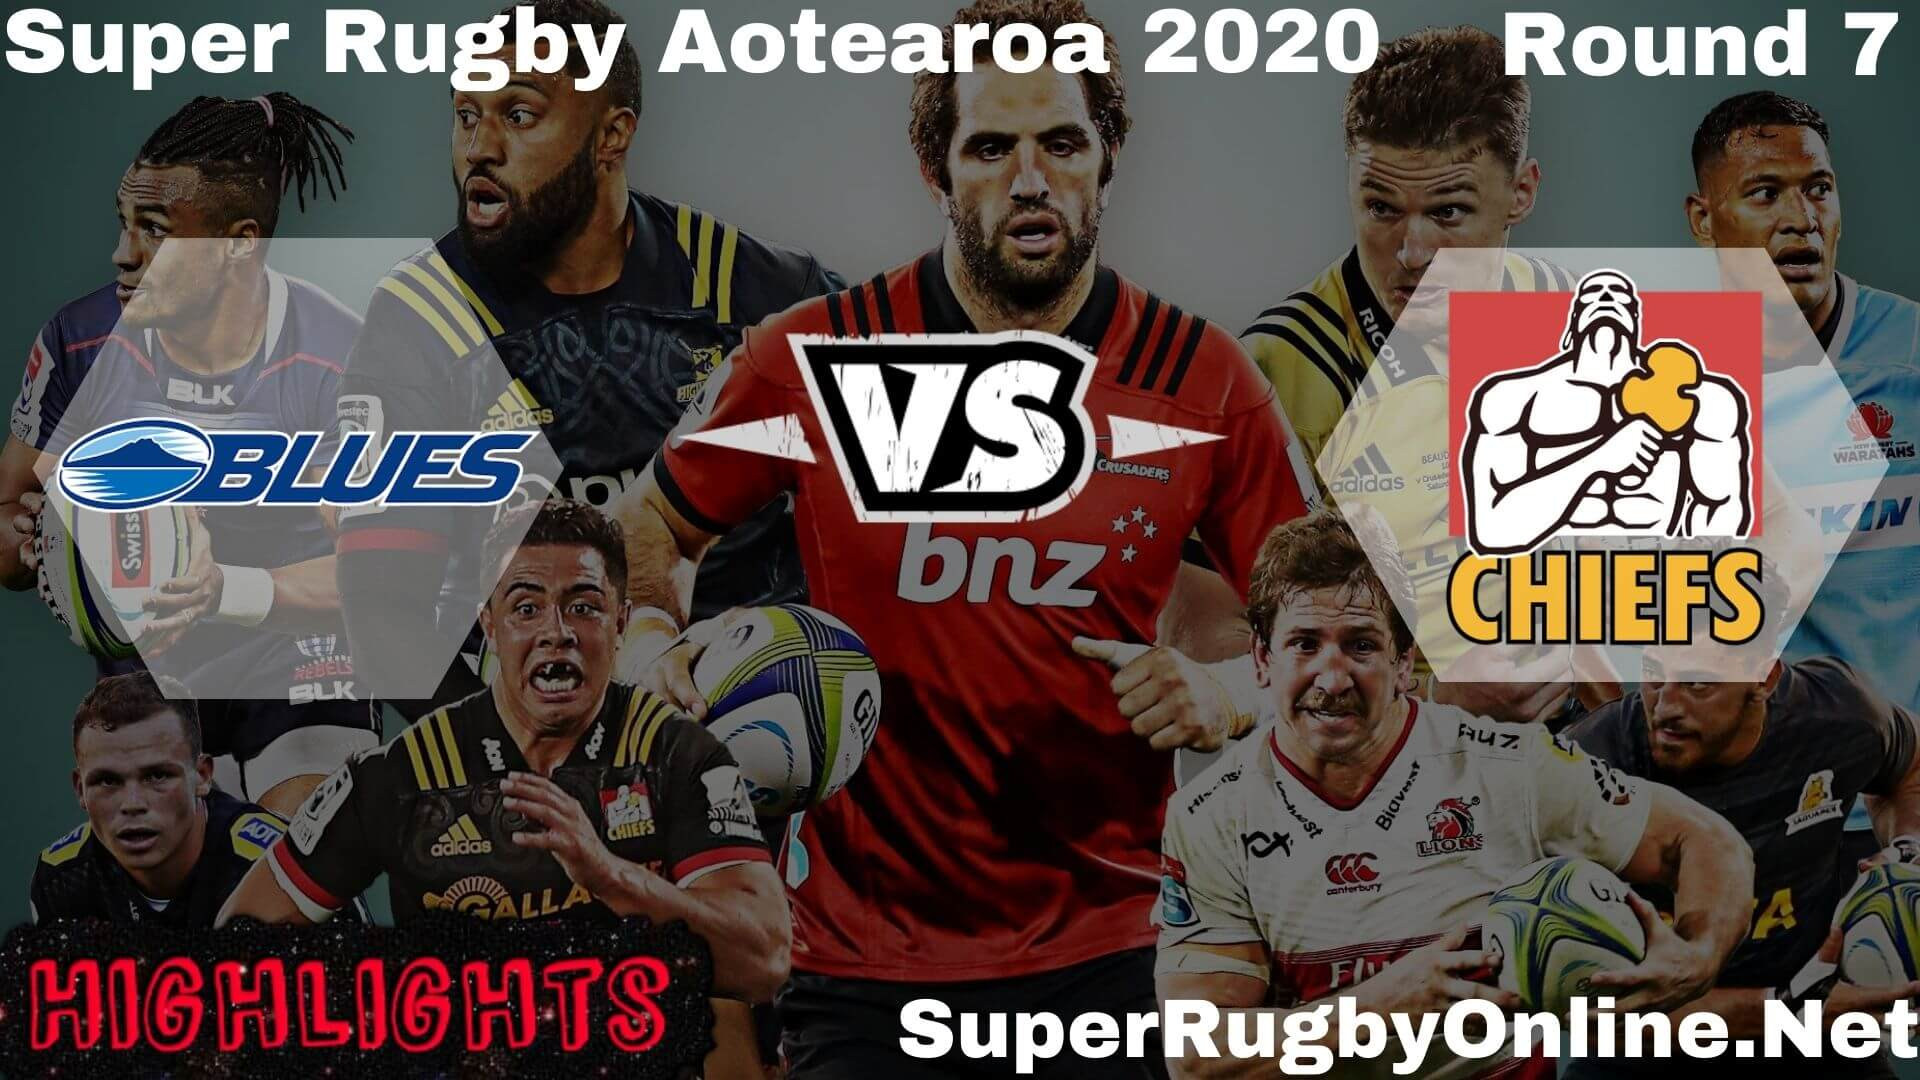 Blues Vs Chiefs Rd 7 Highlights 2020 Super Rugby Aotearao